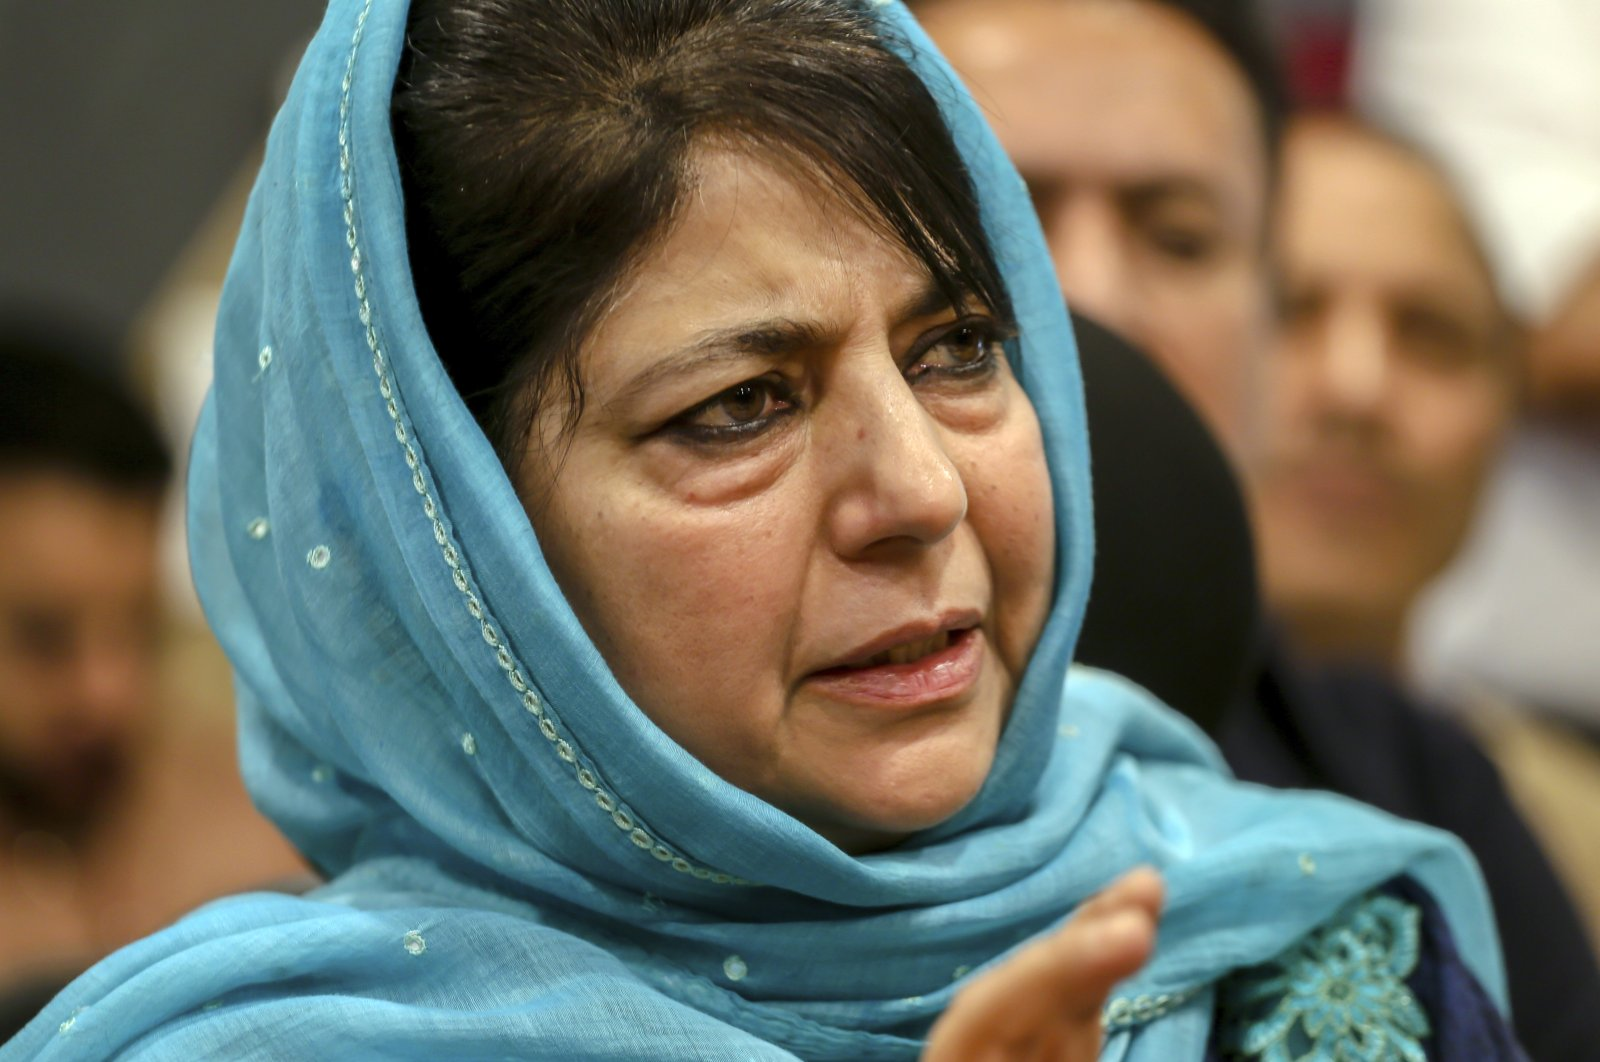 People's Democratic Party leader Mehbooba Mufti addresses the media after resigning as the chief minister of Jammu and Kashmir in Srinagar, Indian-controlled Kashmir, June 19, 2018. (AP Photo)